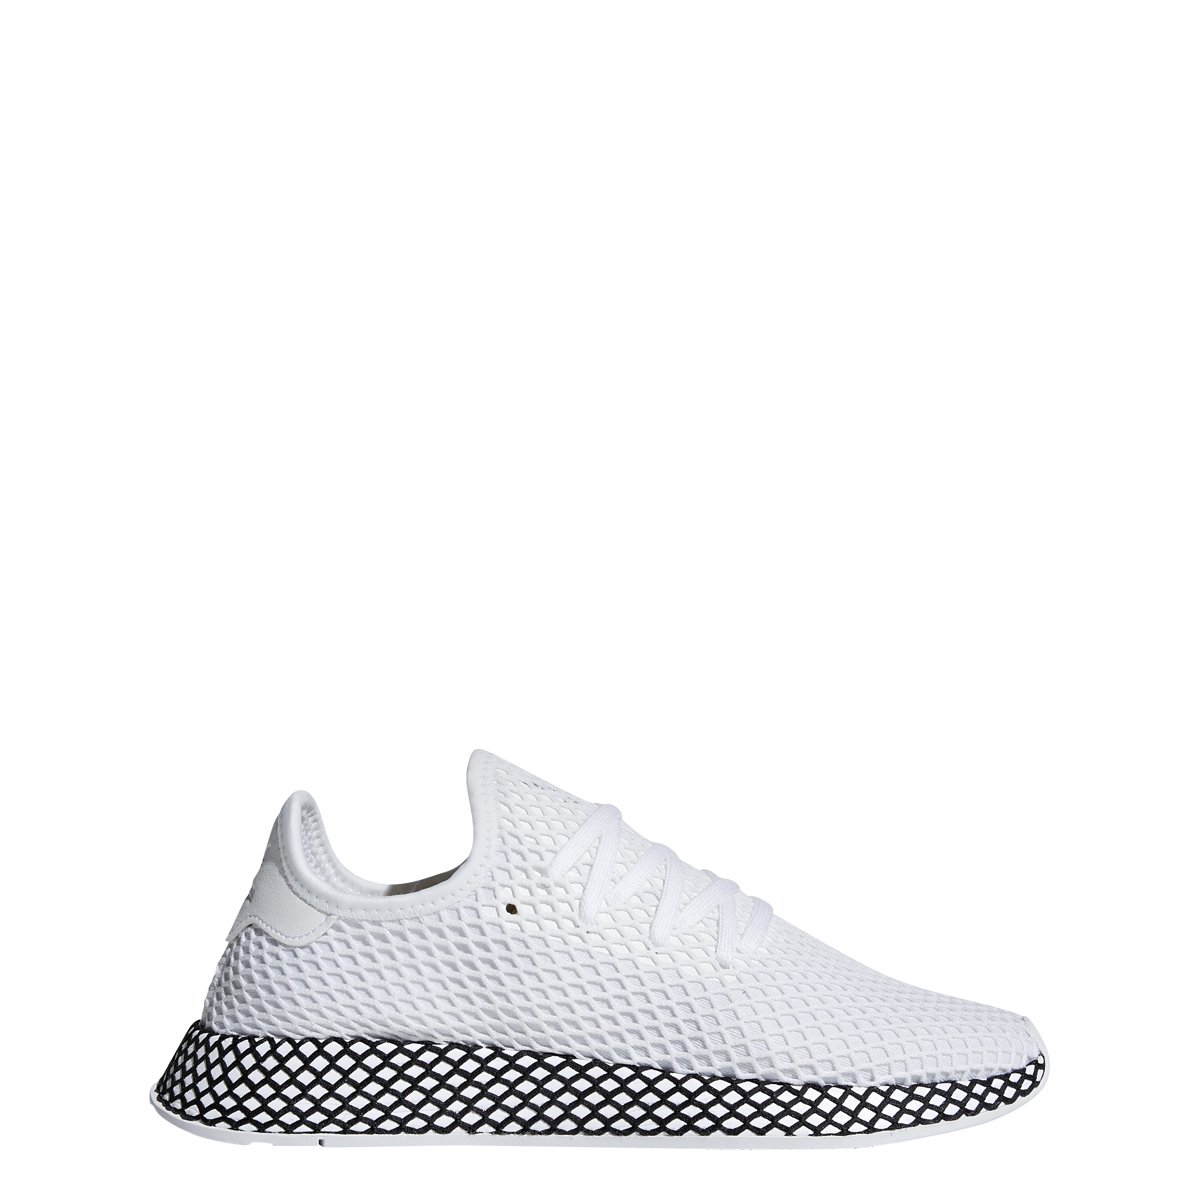 adidas Mens DEERUPT Runner White/White/Black - B41767 (10) by adidas